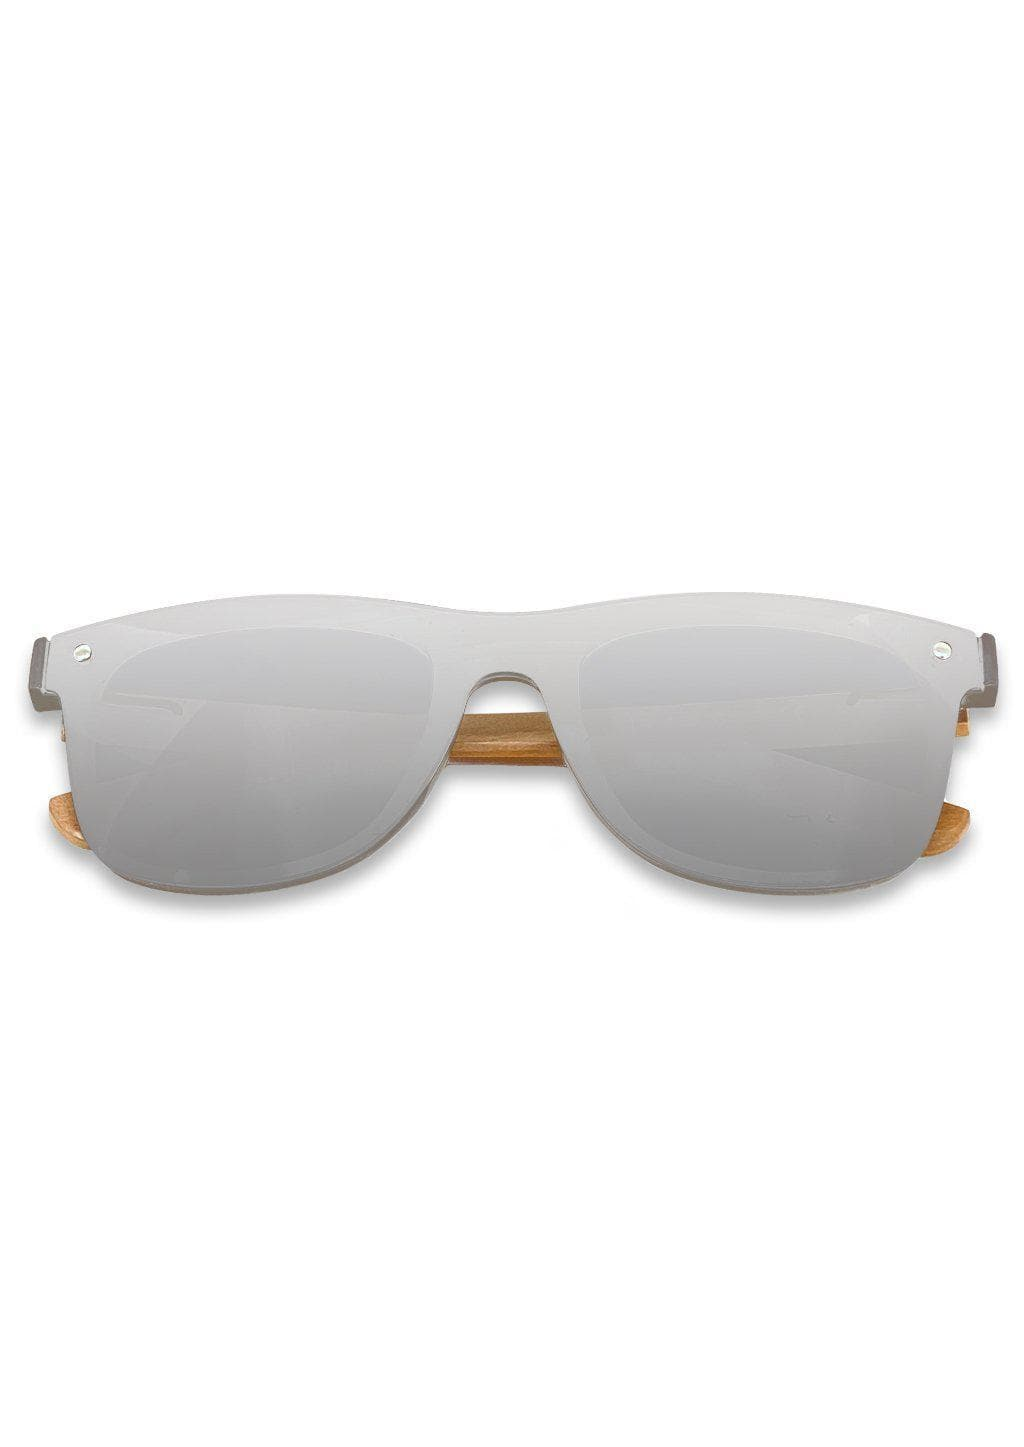 Eyewood tomorrow is our modern cool take on classic models. This is Perseus with silver mirror lenses. Nice wooden sunglasses.